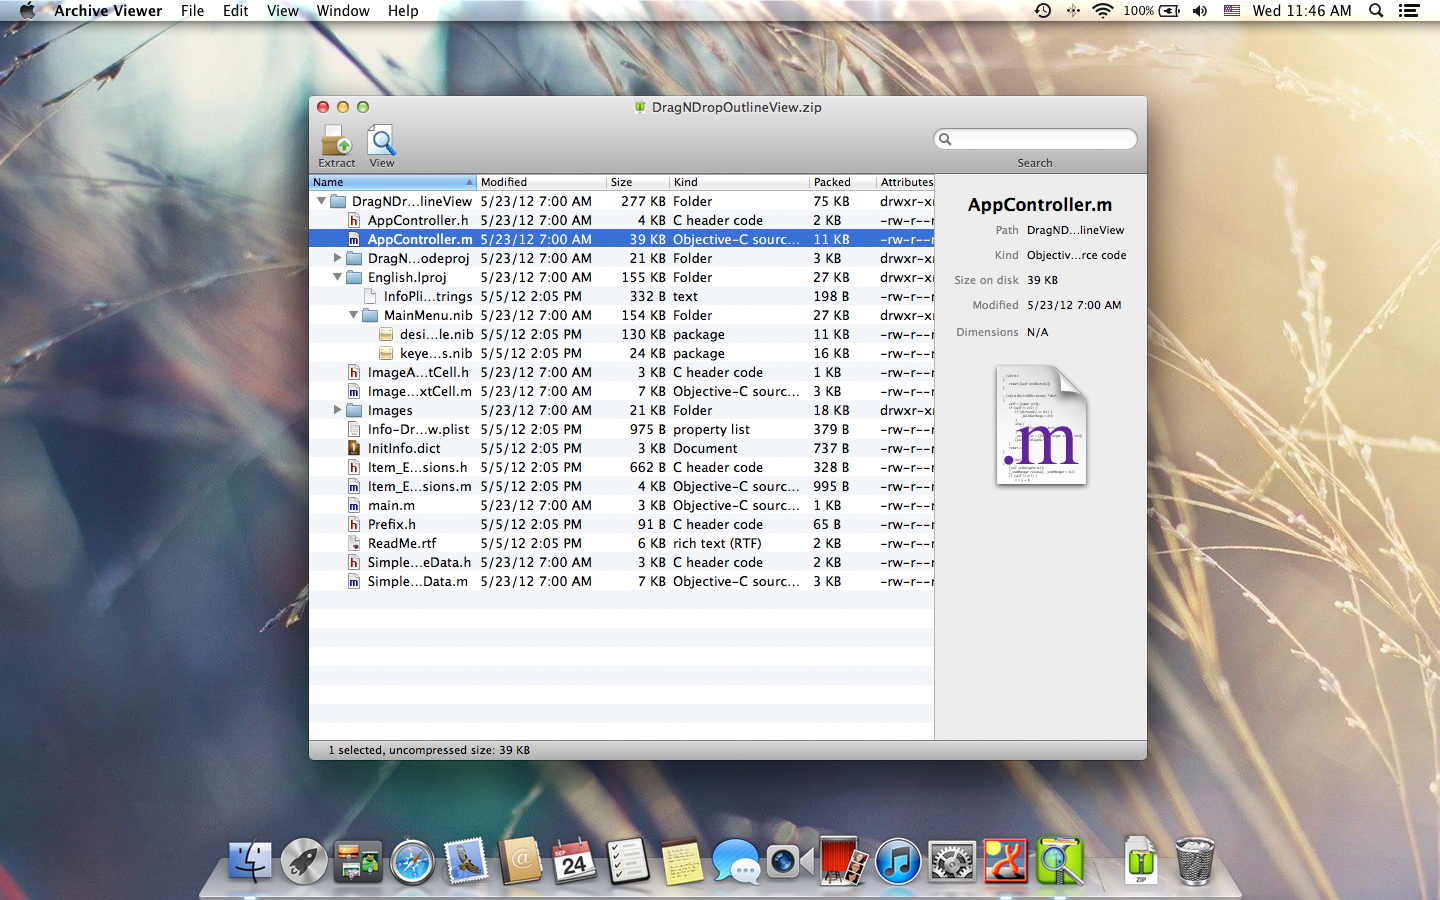 Archive Viewer for Mac OS X